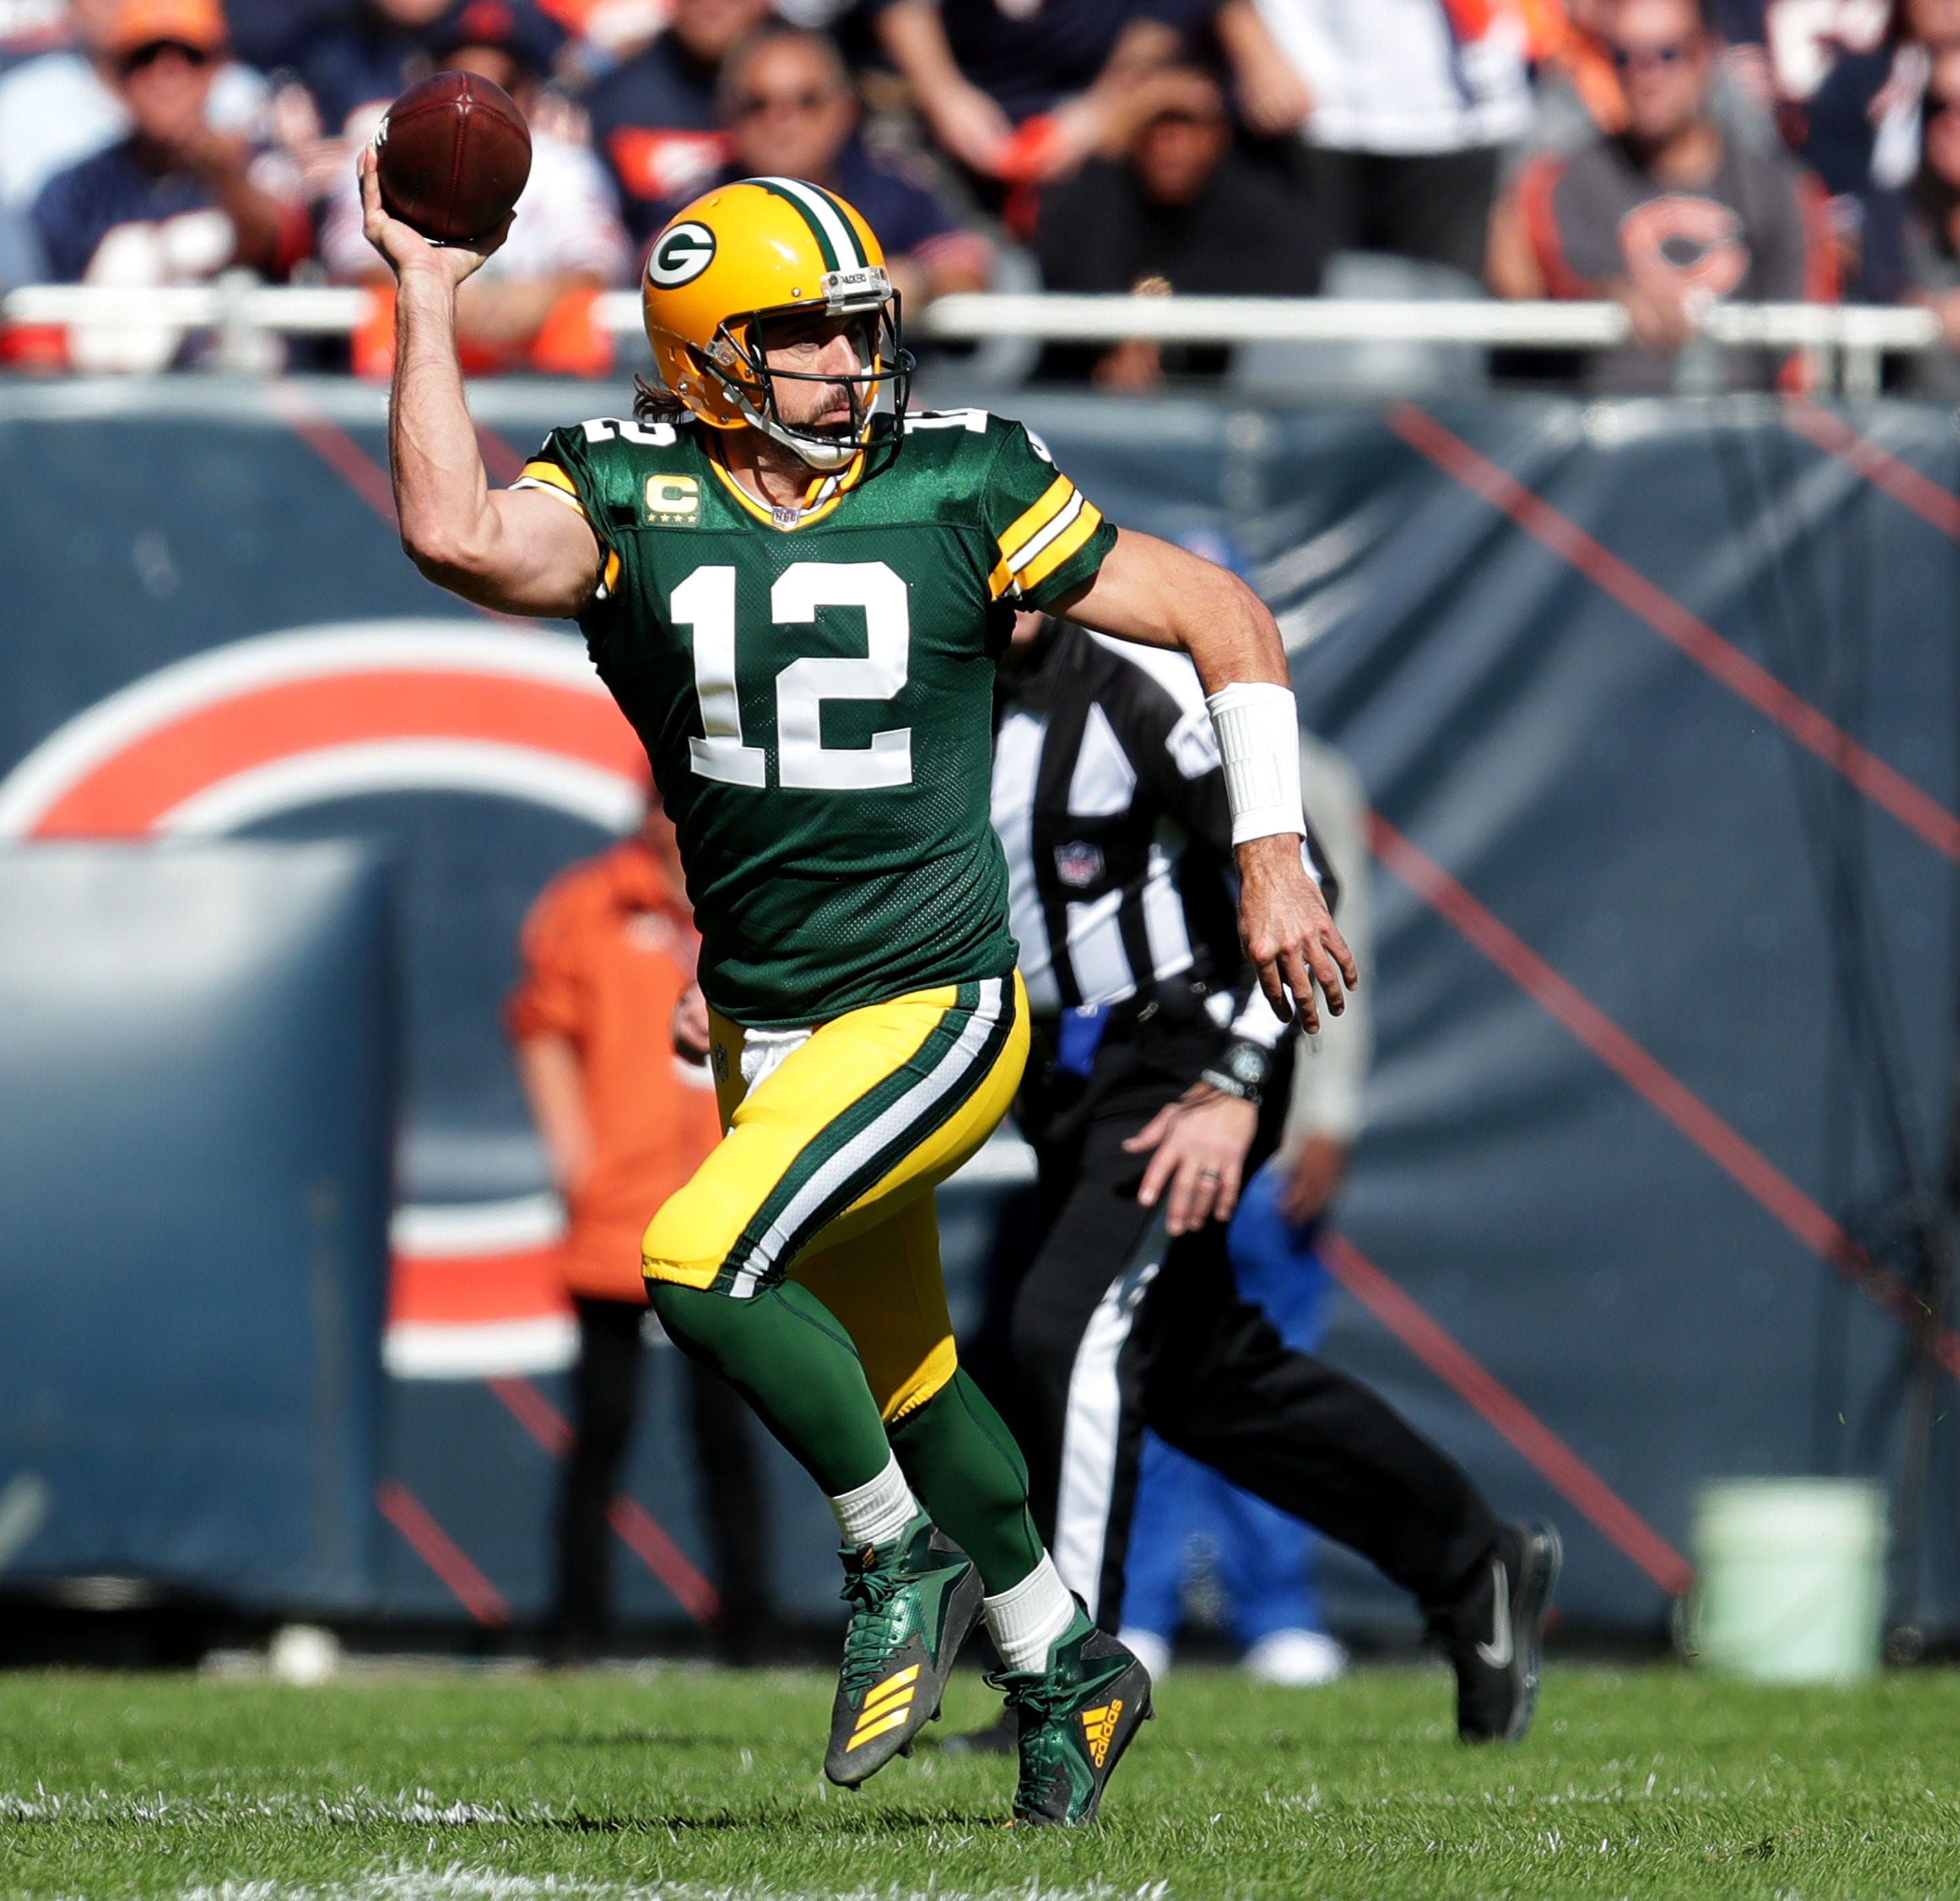 Green Bay Packers quarterback Aaron Rodgers (12) looks to pass during the 1st quarter of their game at Soldier Field in Chicago on Sunday, Oct. 17, 2021.